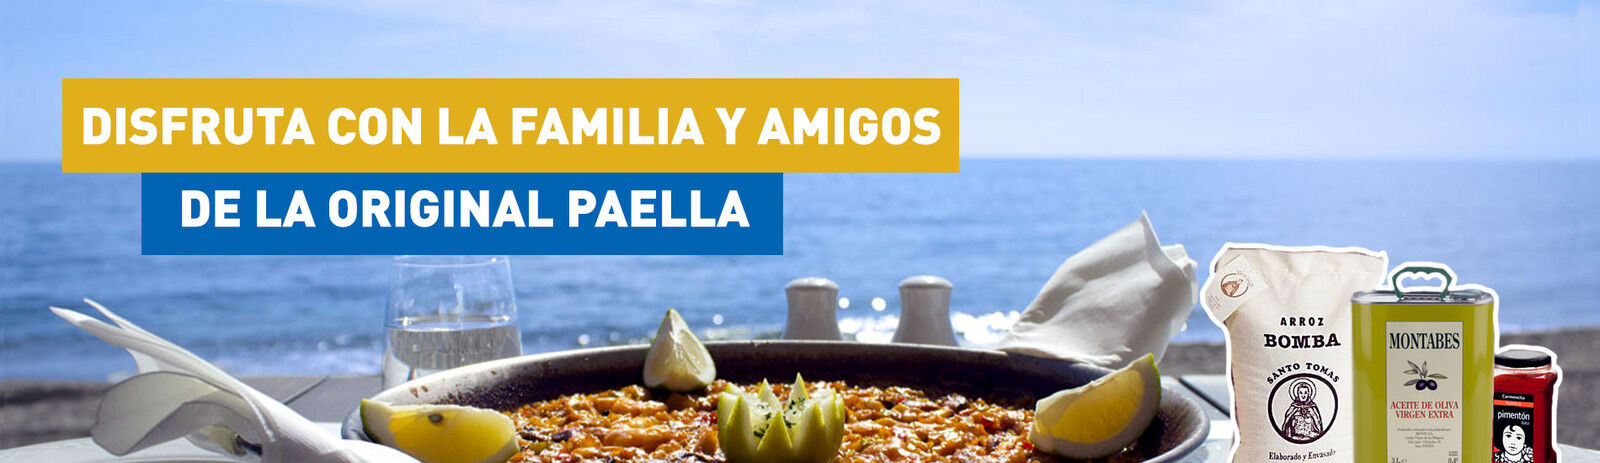 OriginalPaella